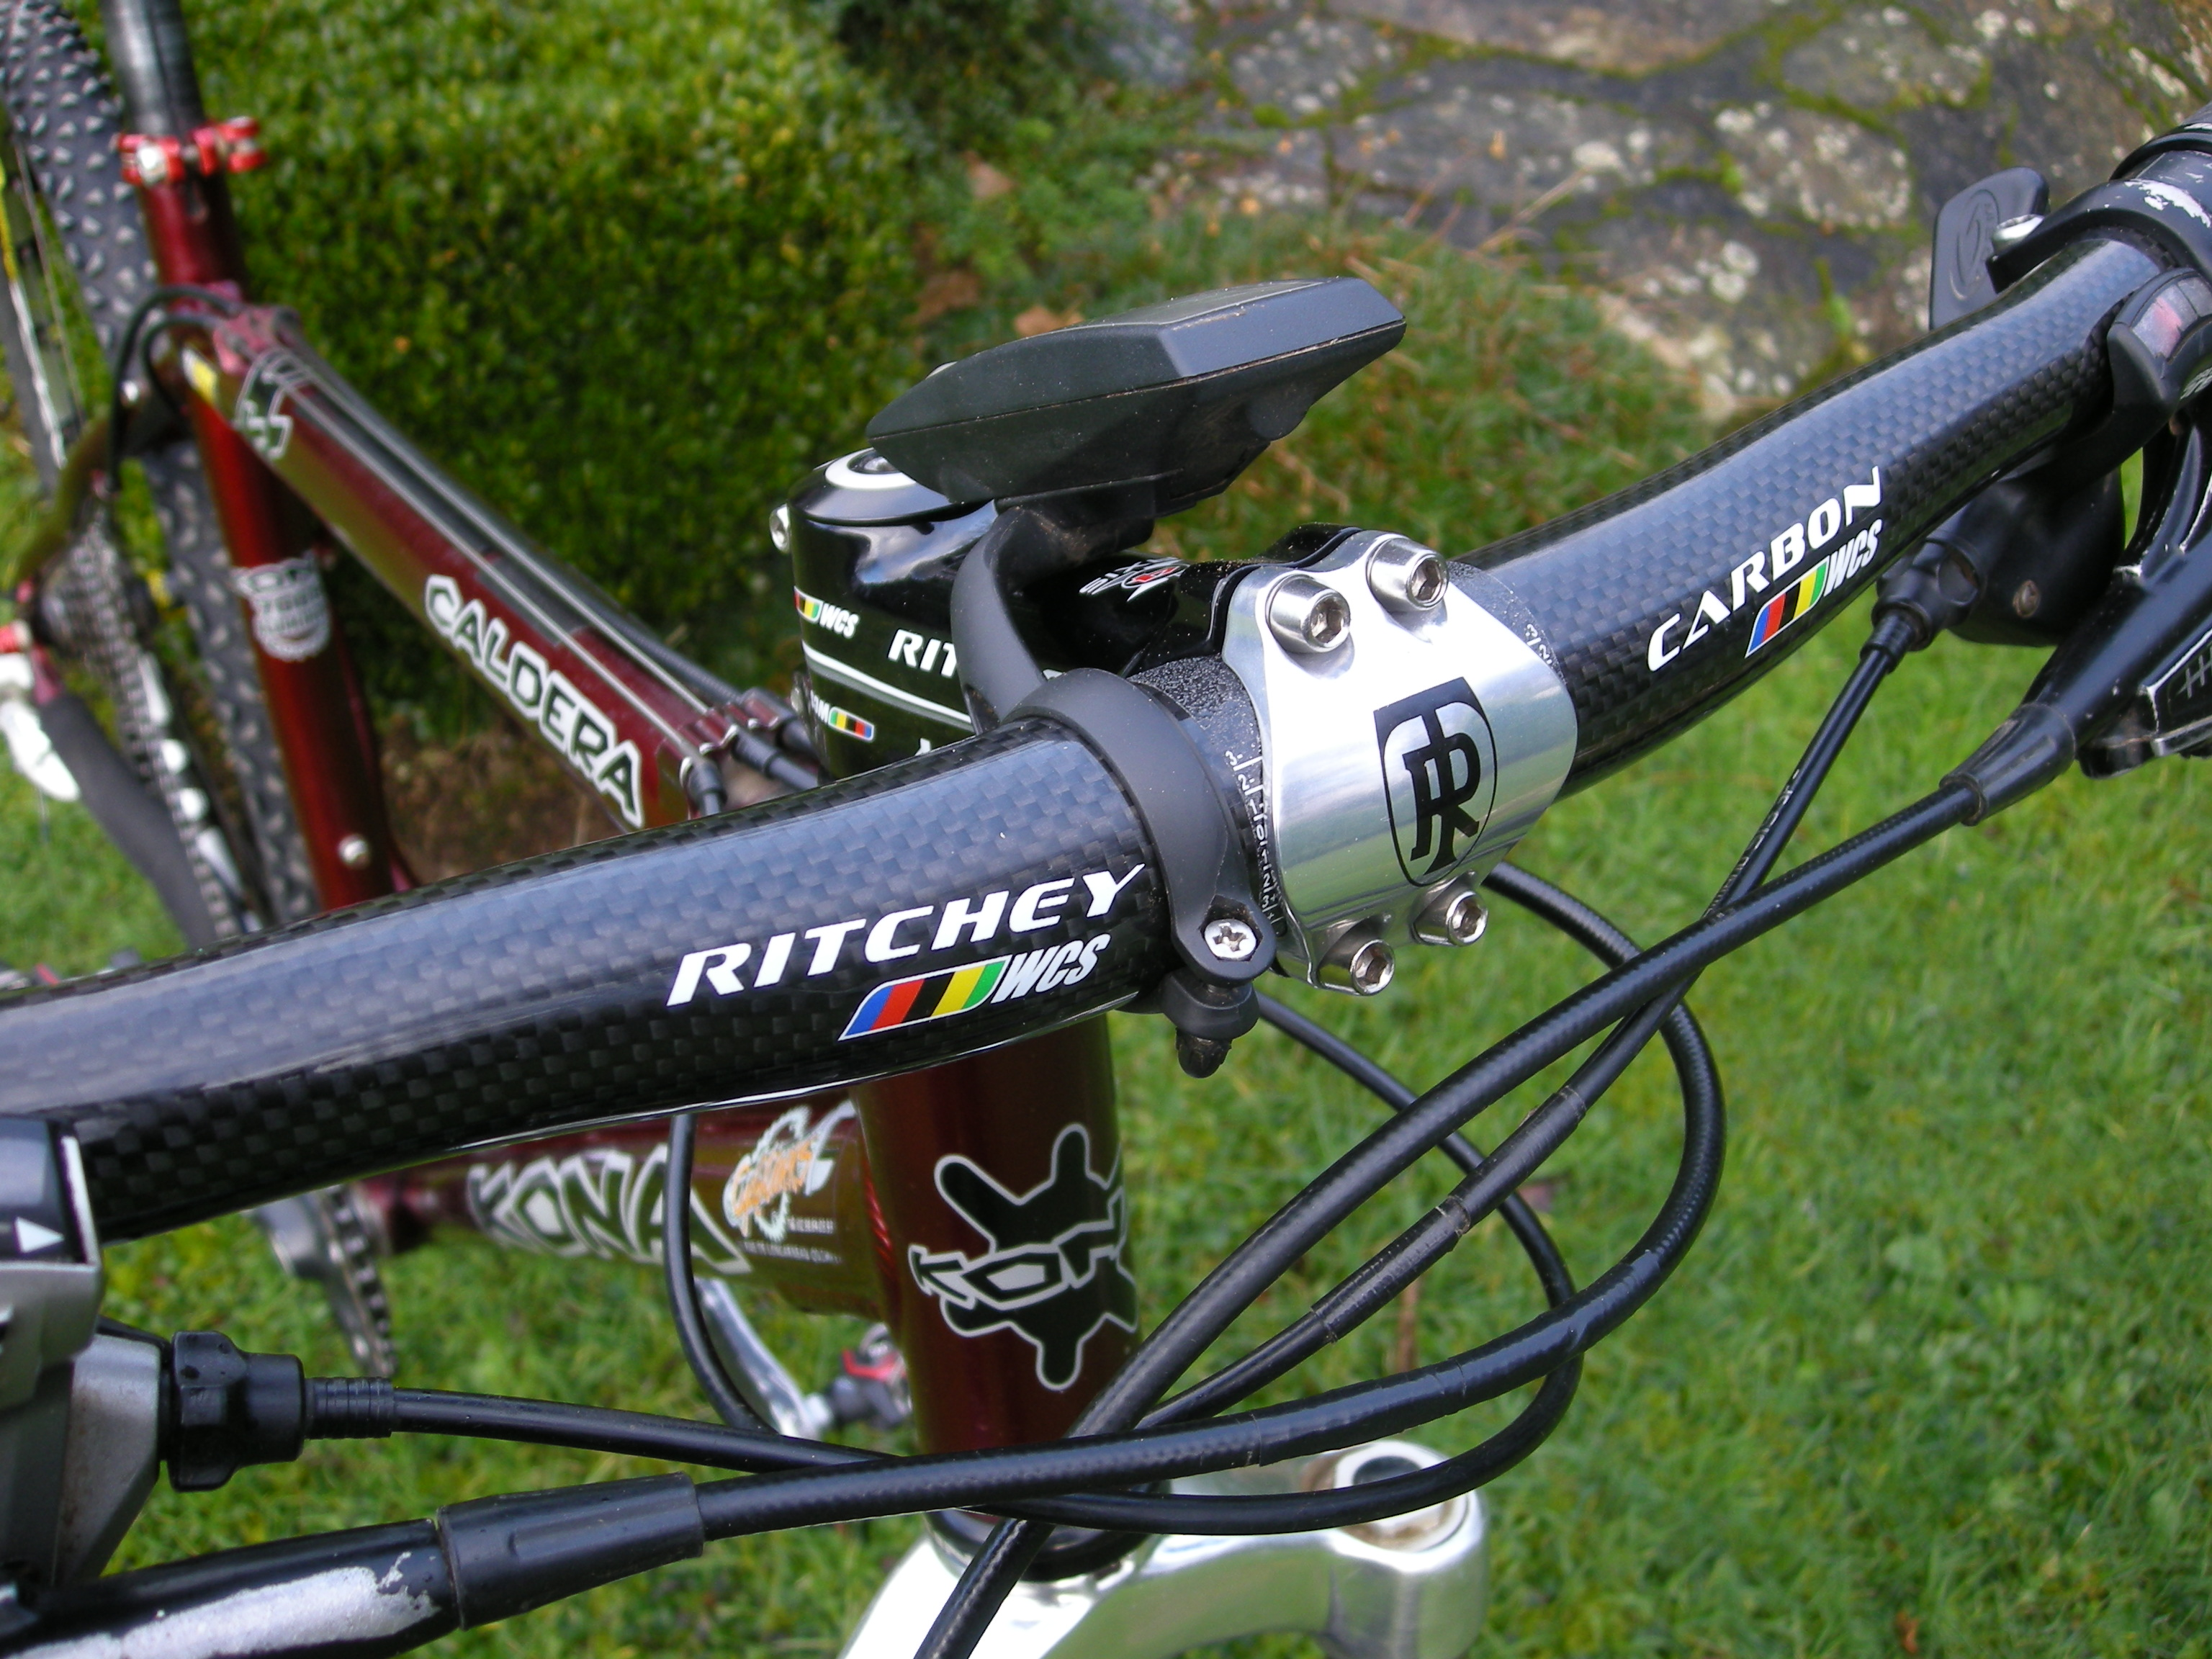 <!--:FR-->Ritchey WCS Carbon<!--:-->